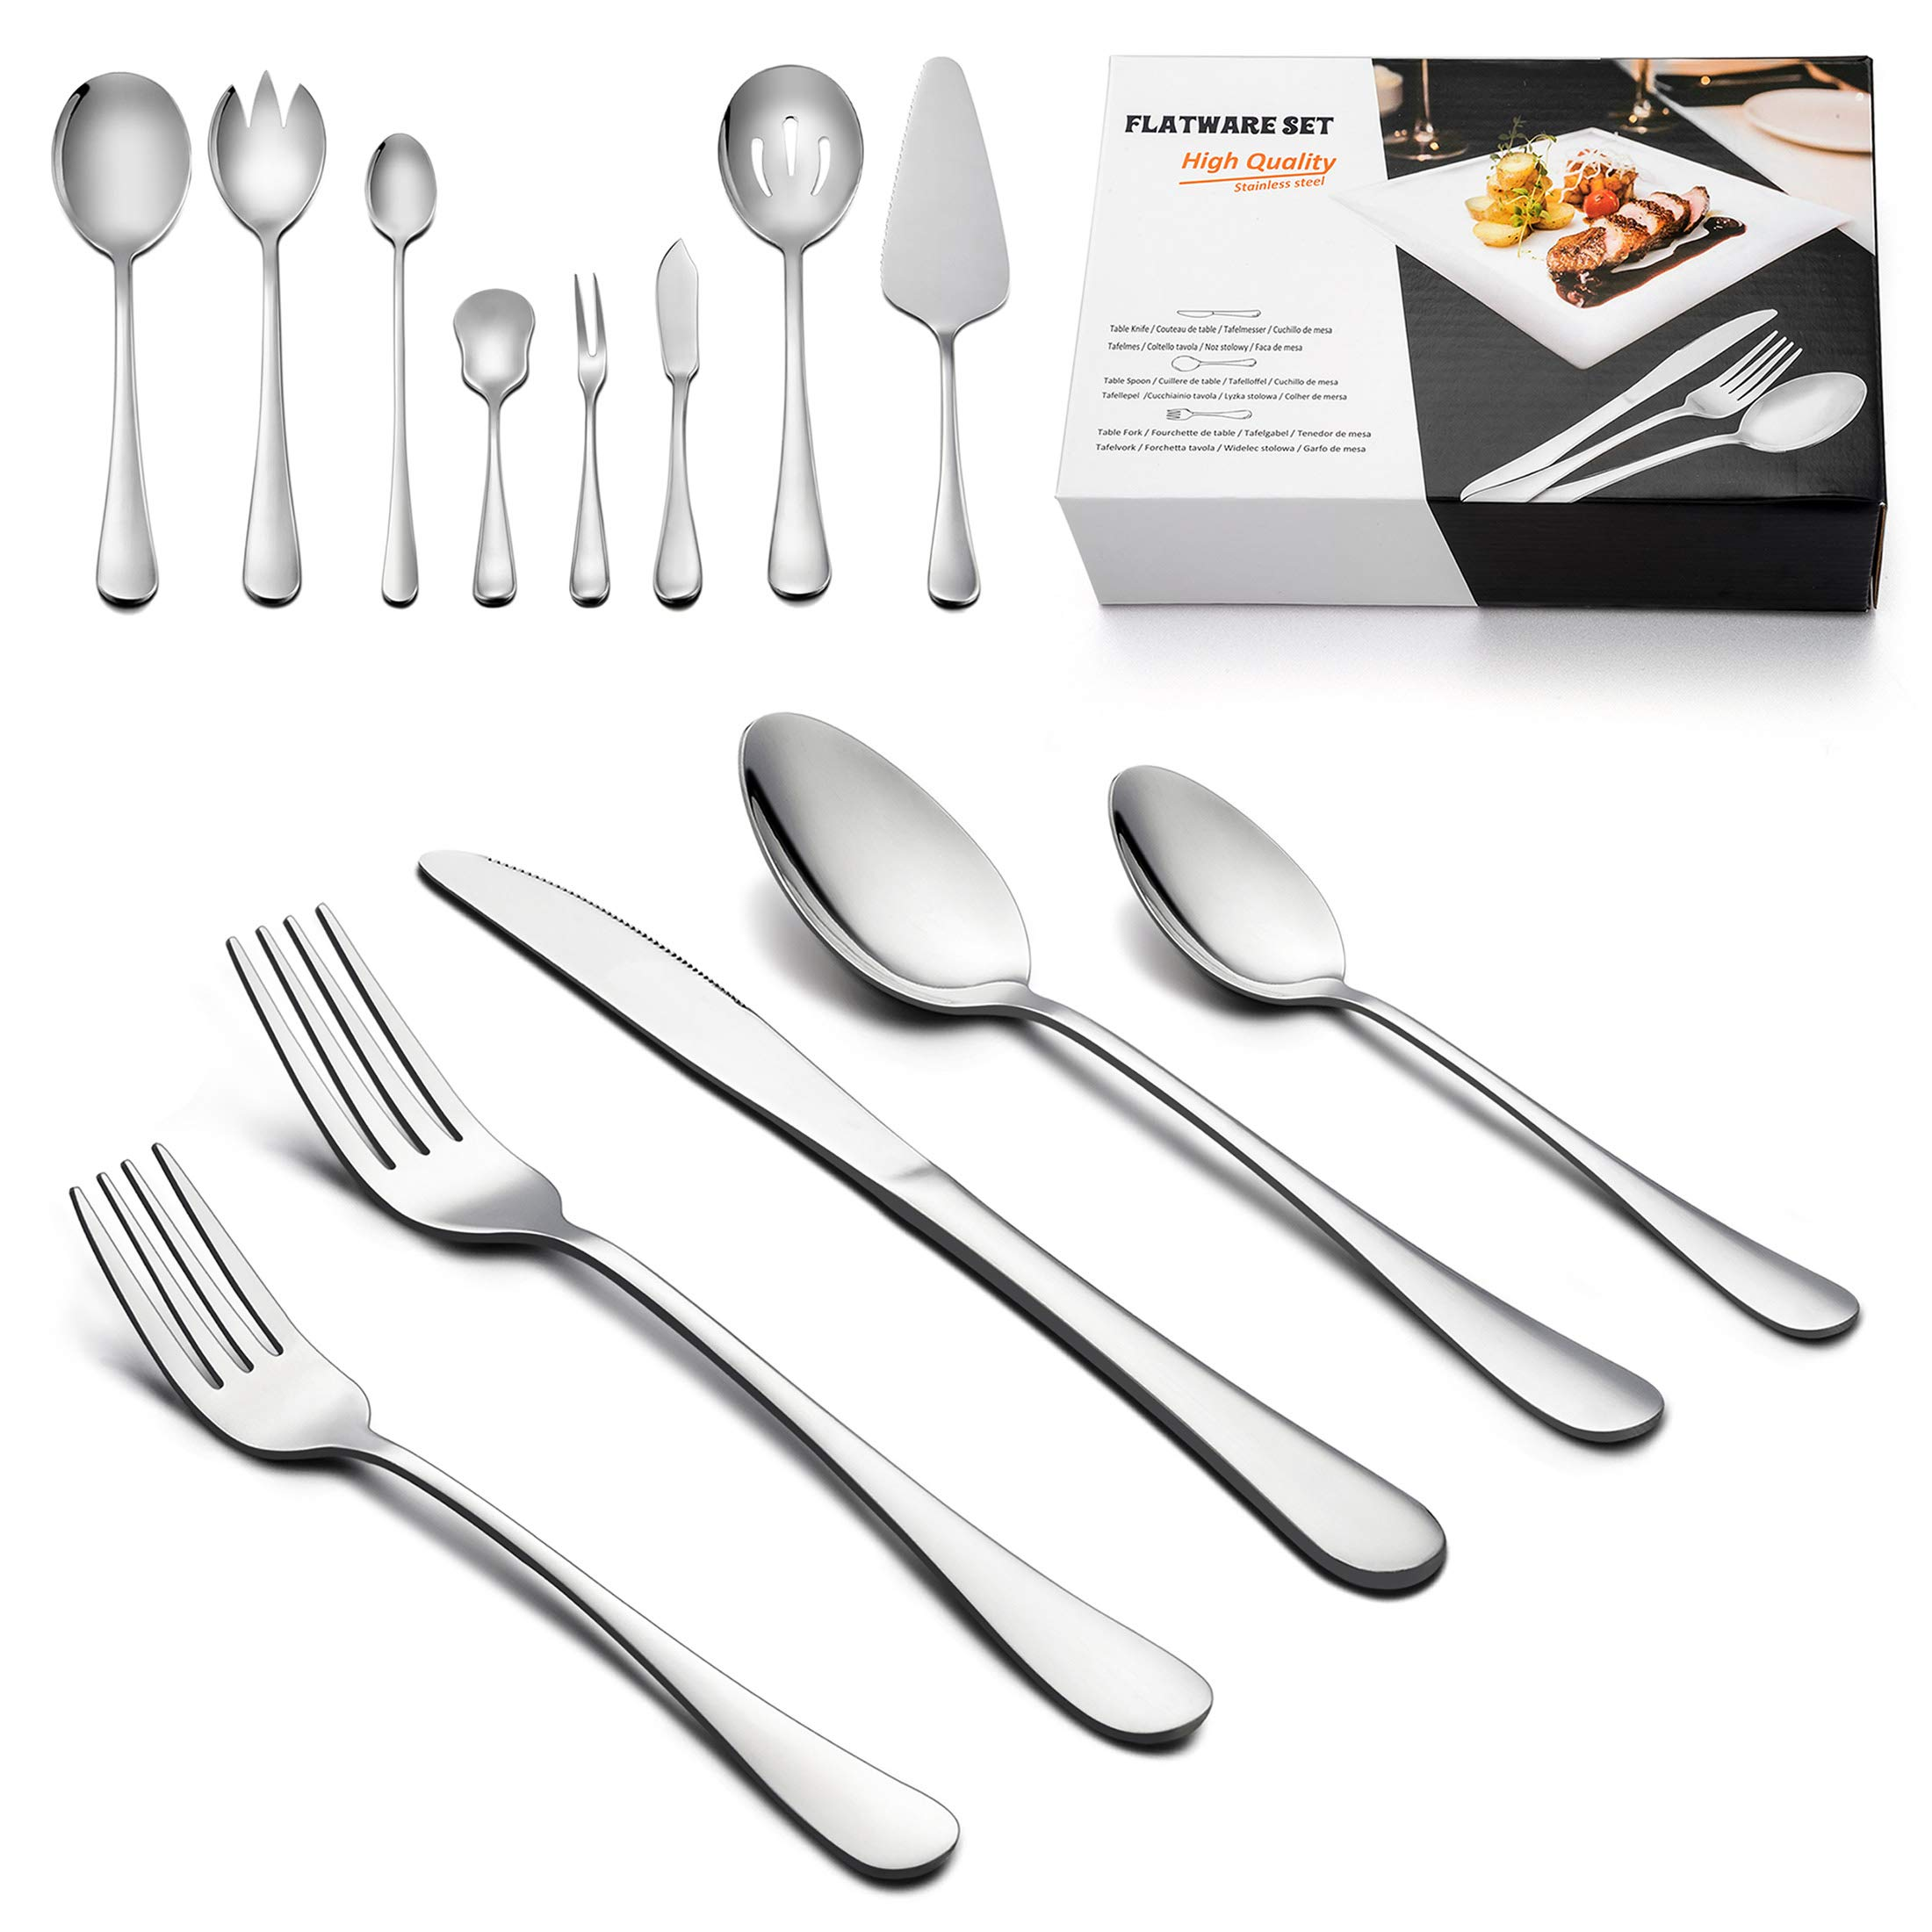 Silverware Set with Serving Pieces, LIANYU 48-Piece Flatware Set Service for 8, Stainless Steel Cutlery Eating Utensils, Mirror Finish, Dishwasher Safe